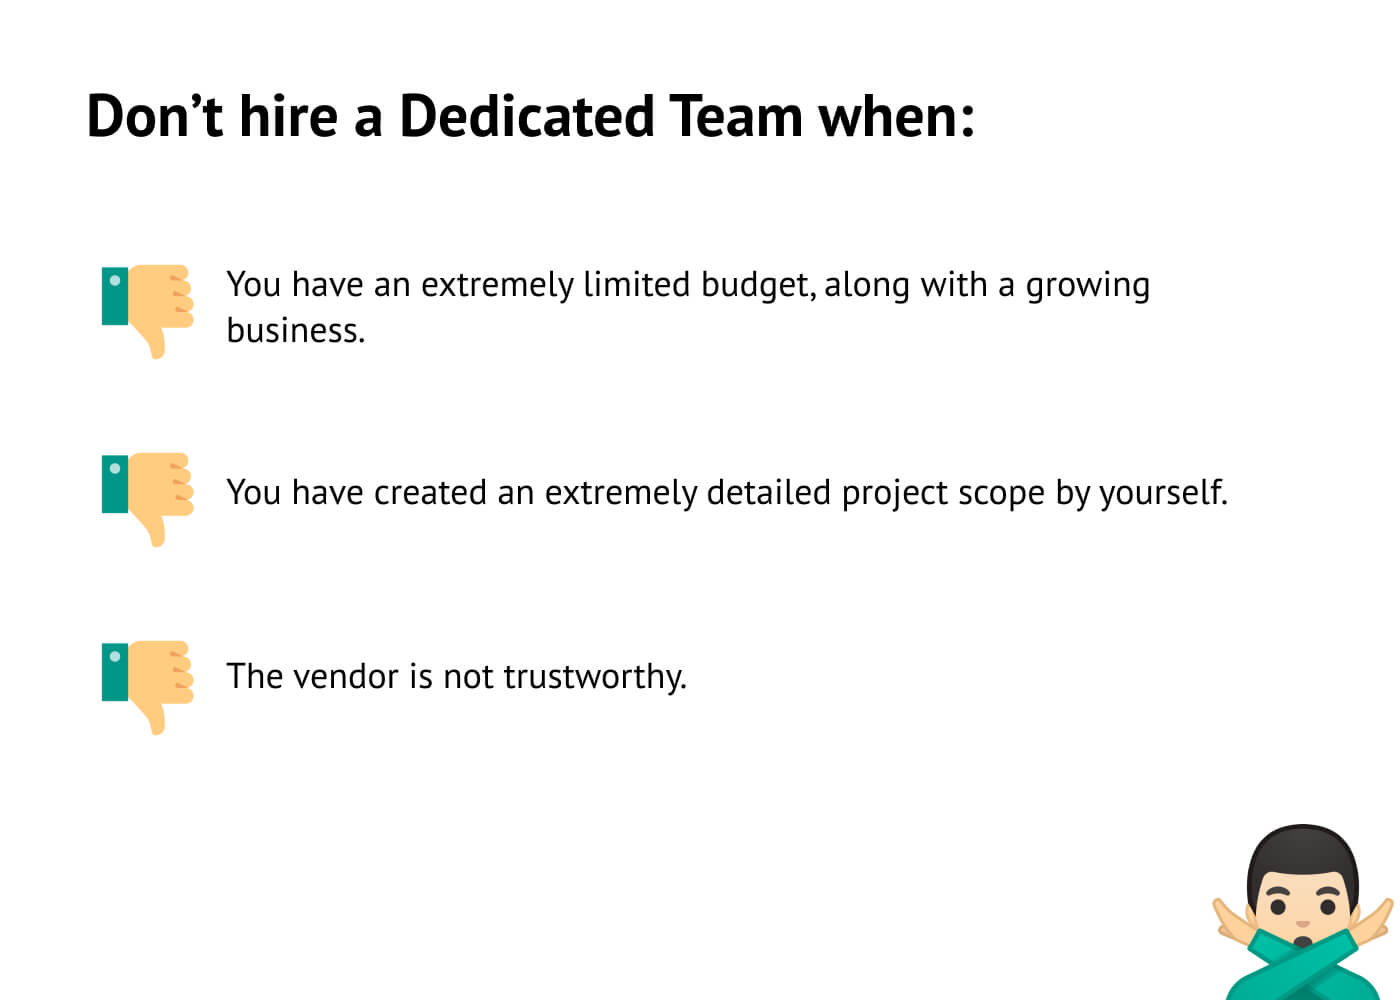 When not to hire a Dedicated Team